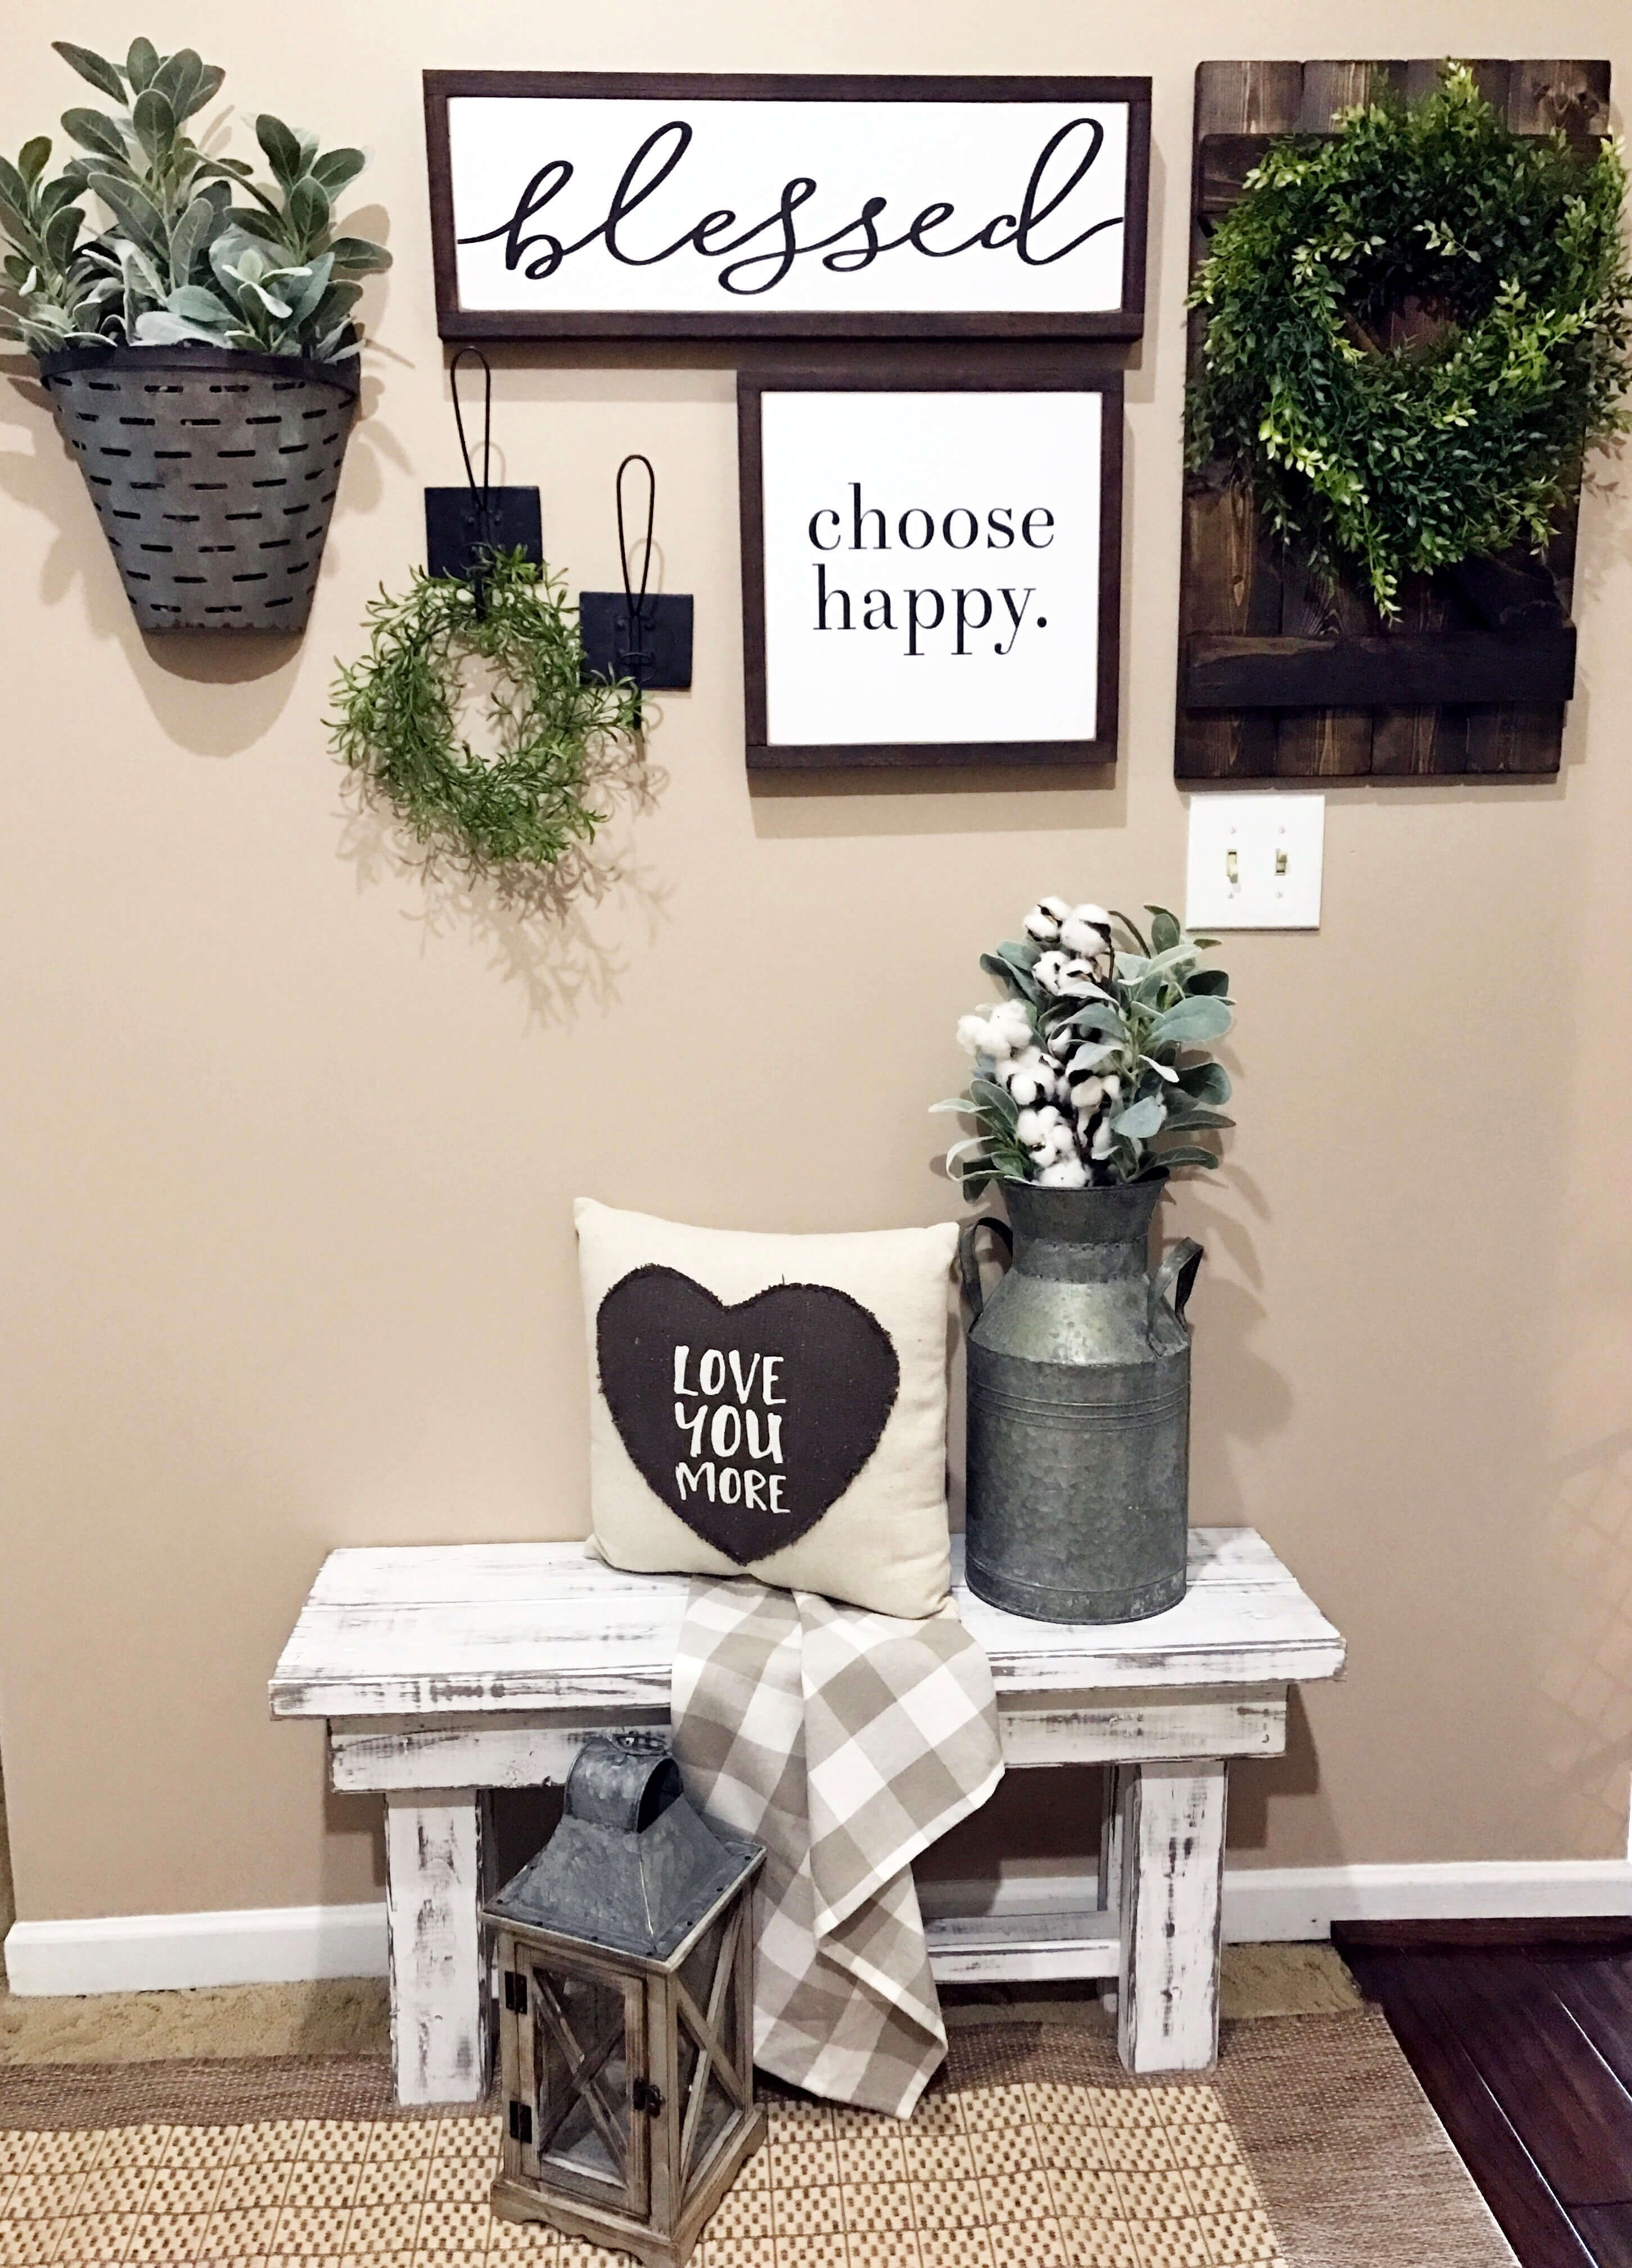 45+ Best Farmhouse Wall Decor Ideas And Designs For 2019 For Blessed Steel Wall Decor (View 22 of 30)